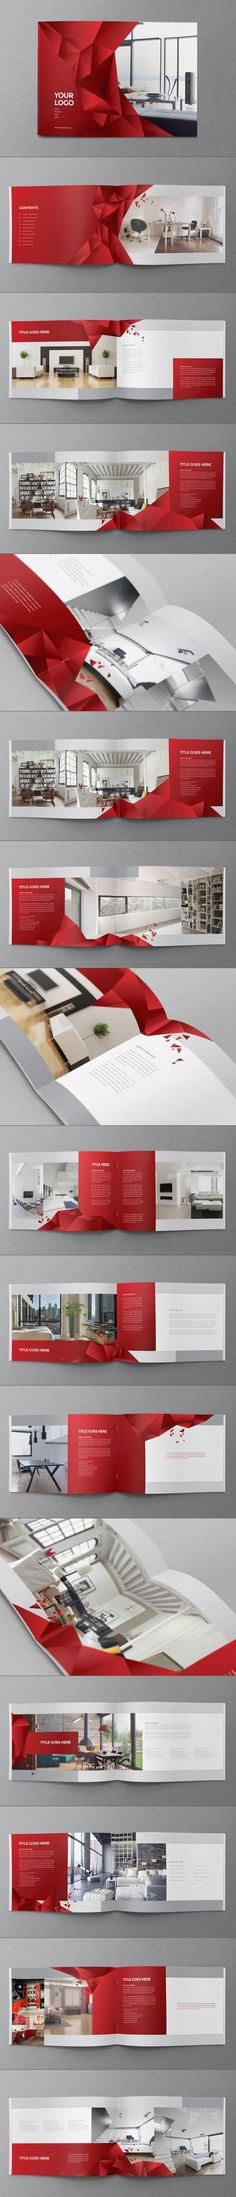 Interior Design Brochure by Abra Design, via Behance: